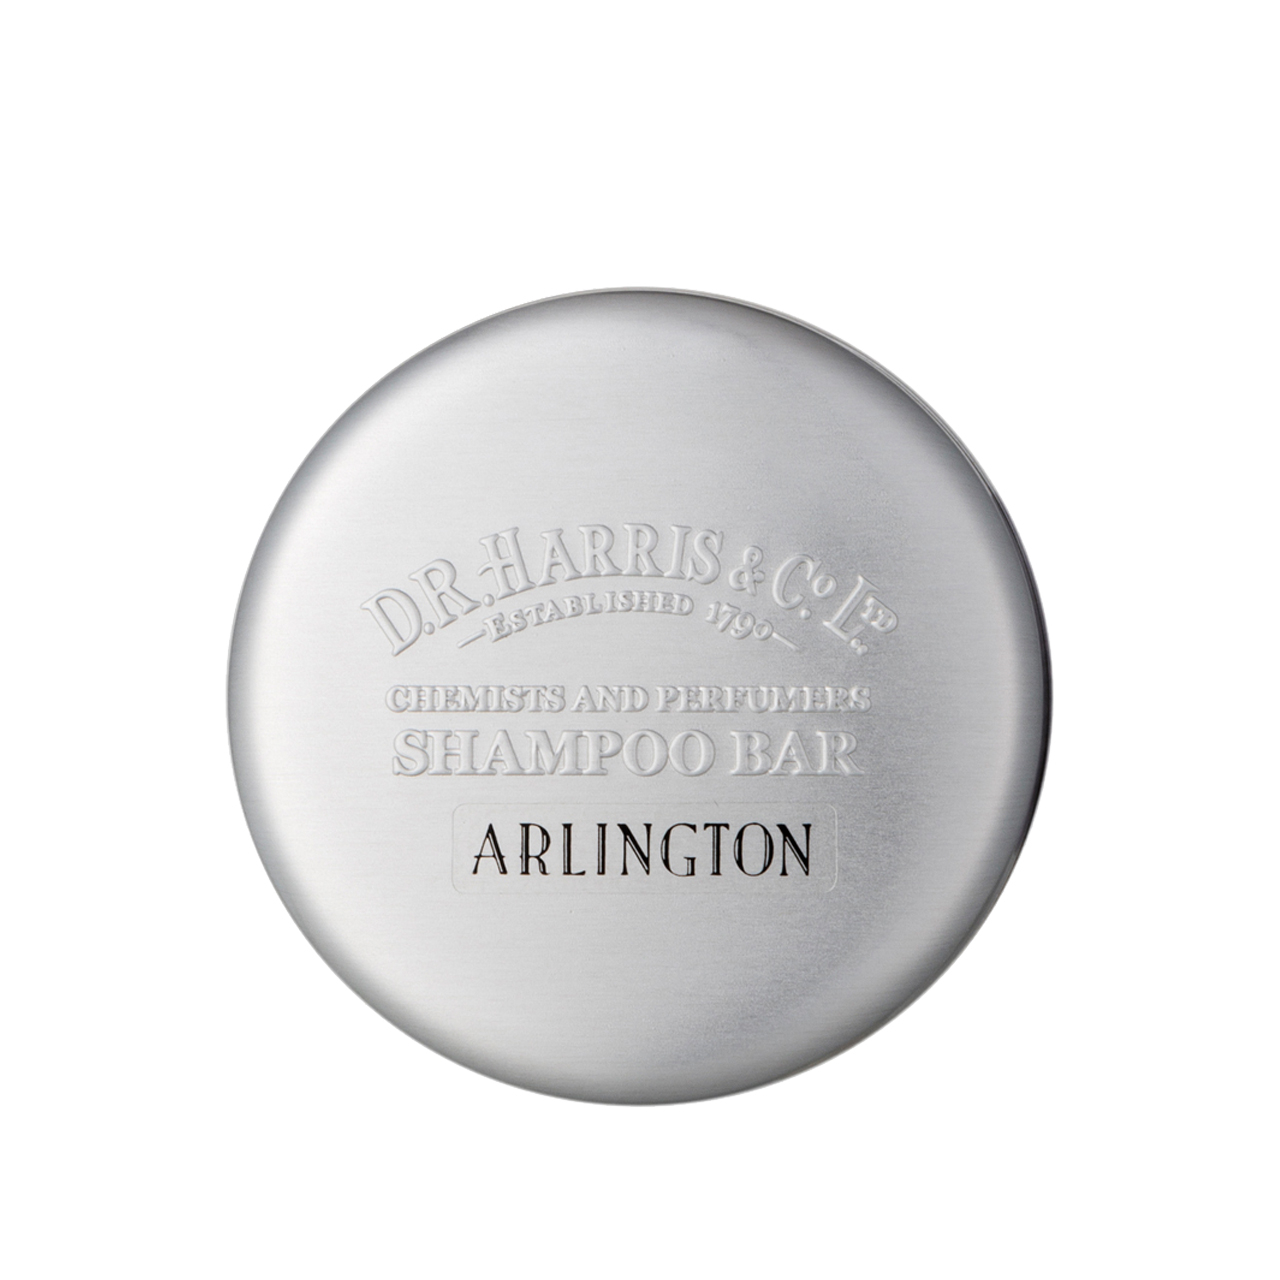 Arlington - Shampoo Bar